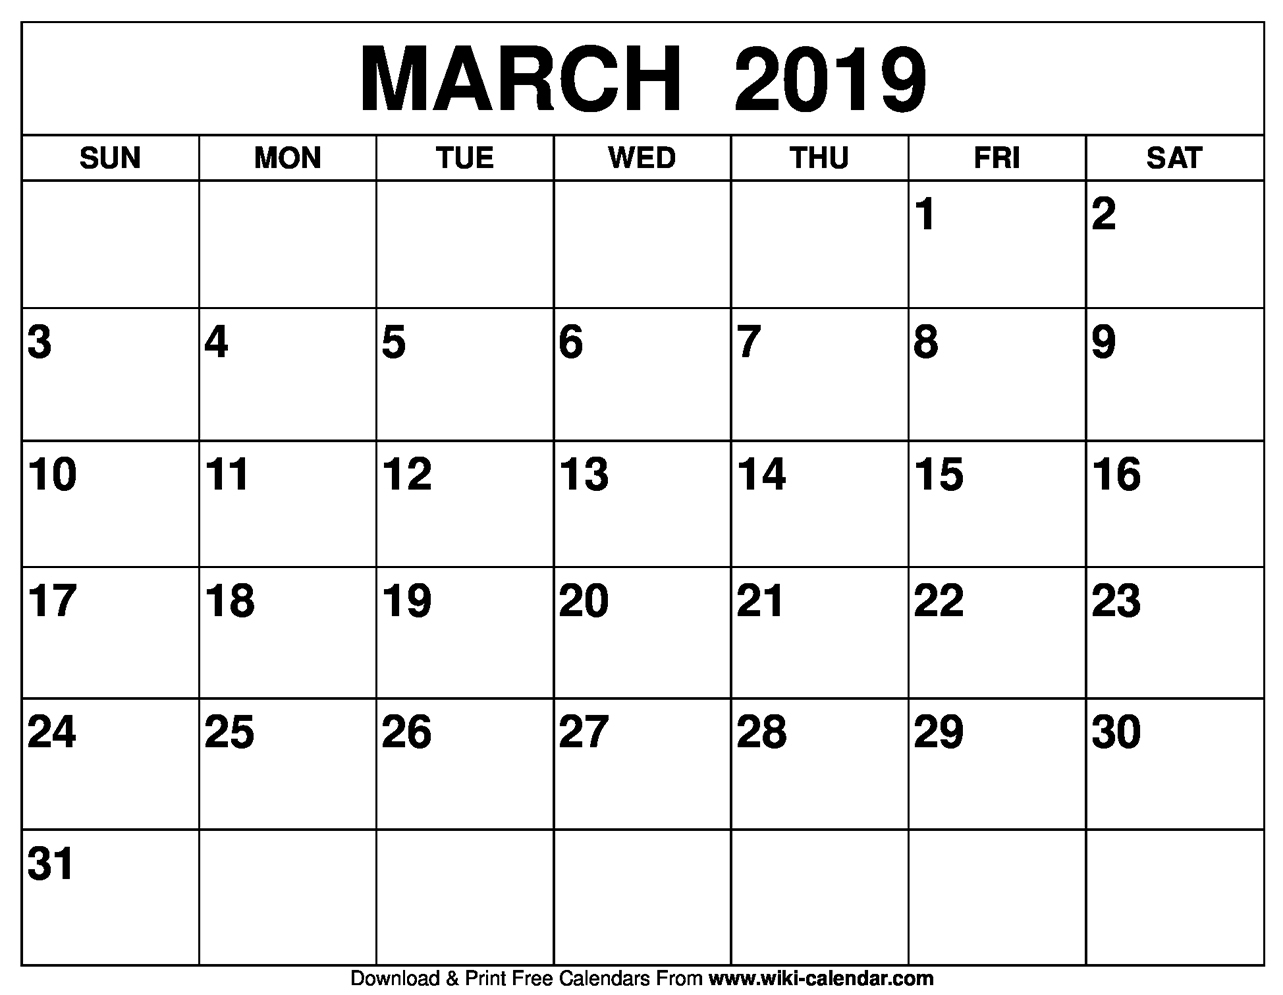 Blank March 2019 Calendar Printable Pertaining To March April Calendar Printable